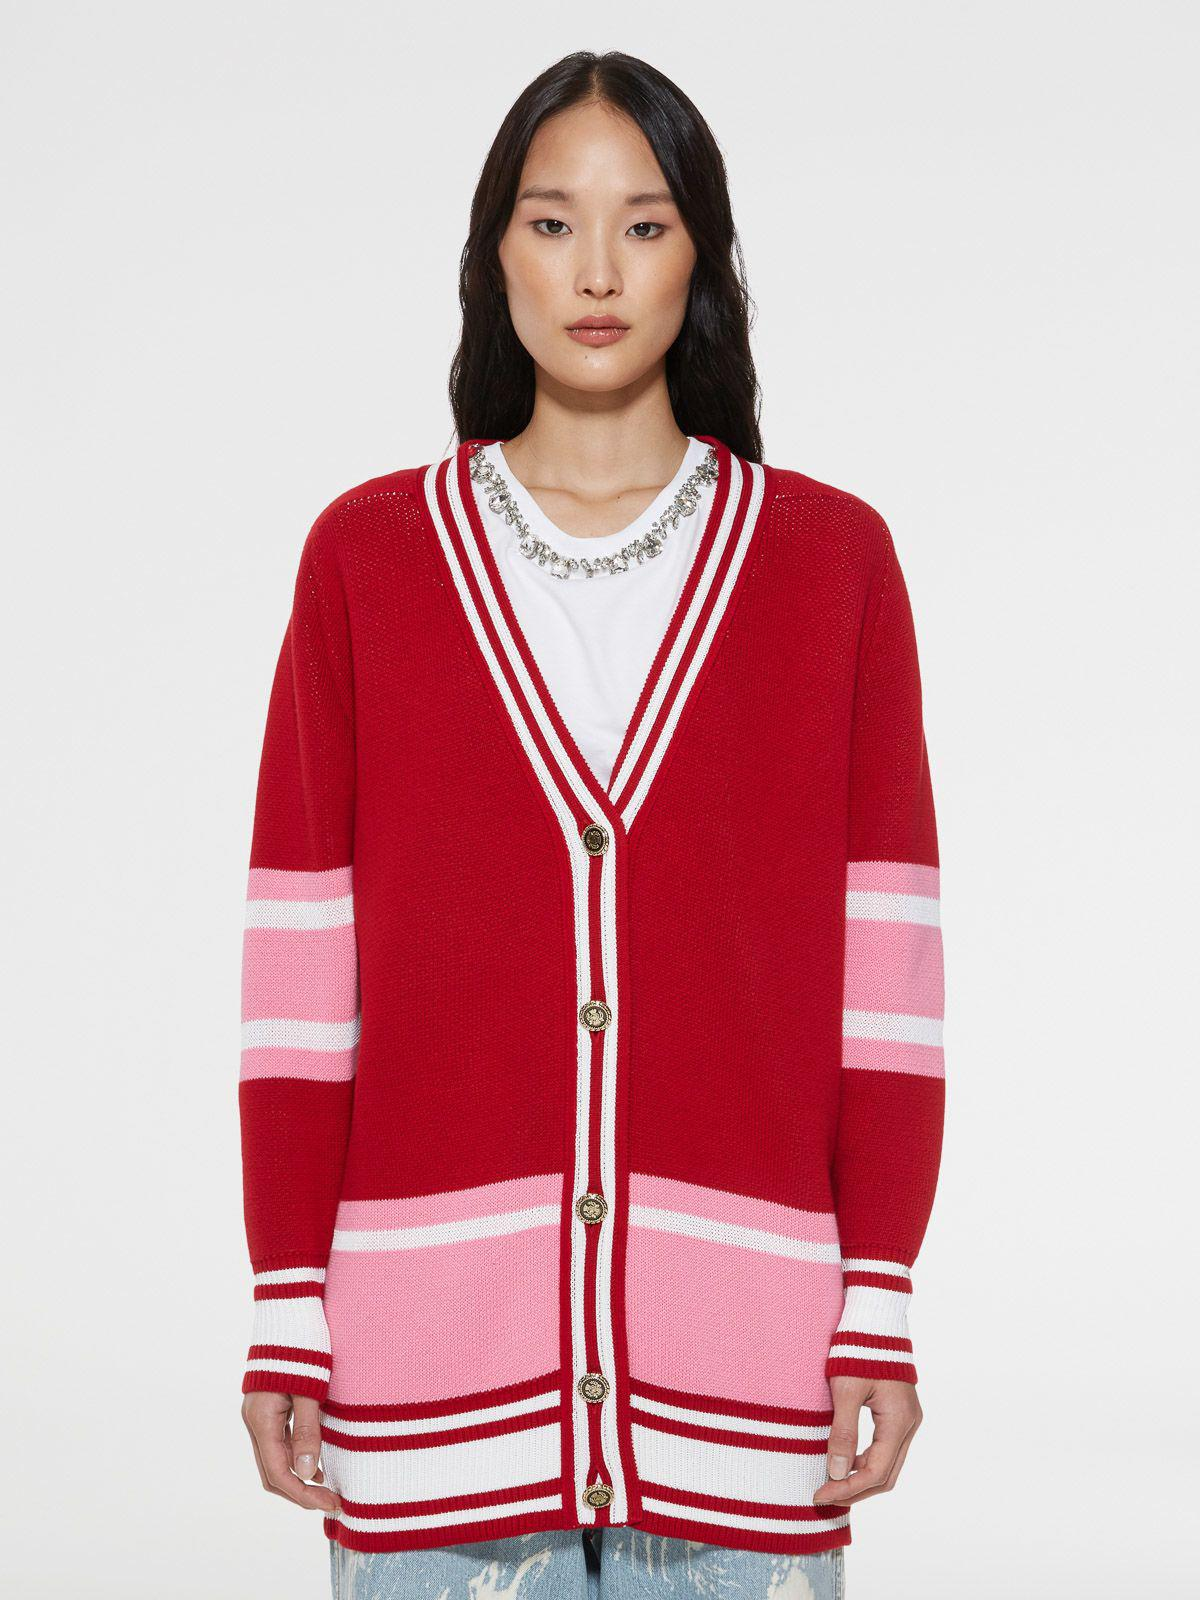 Dixie college cardigan with lettering on the back